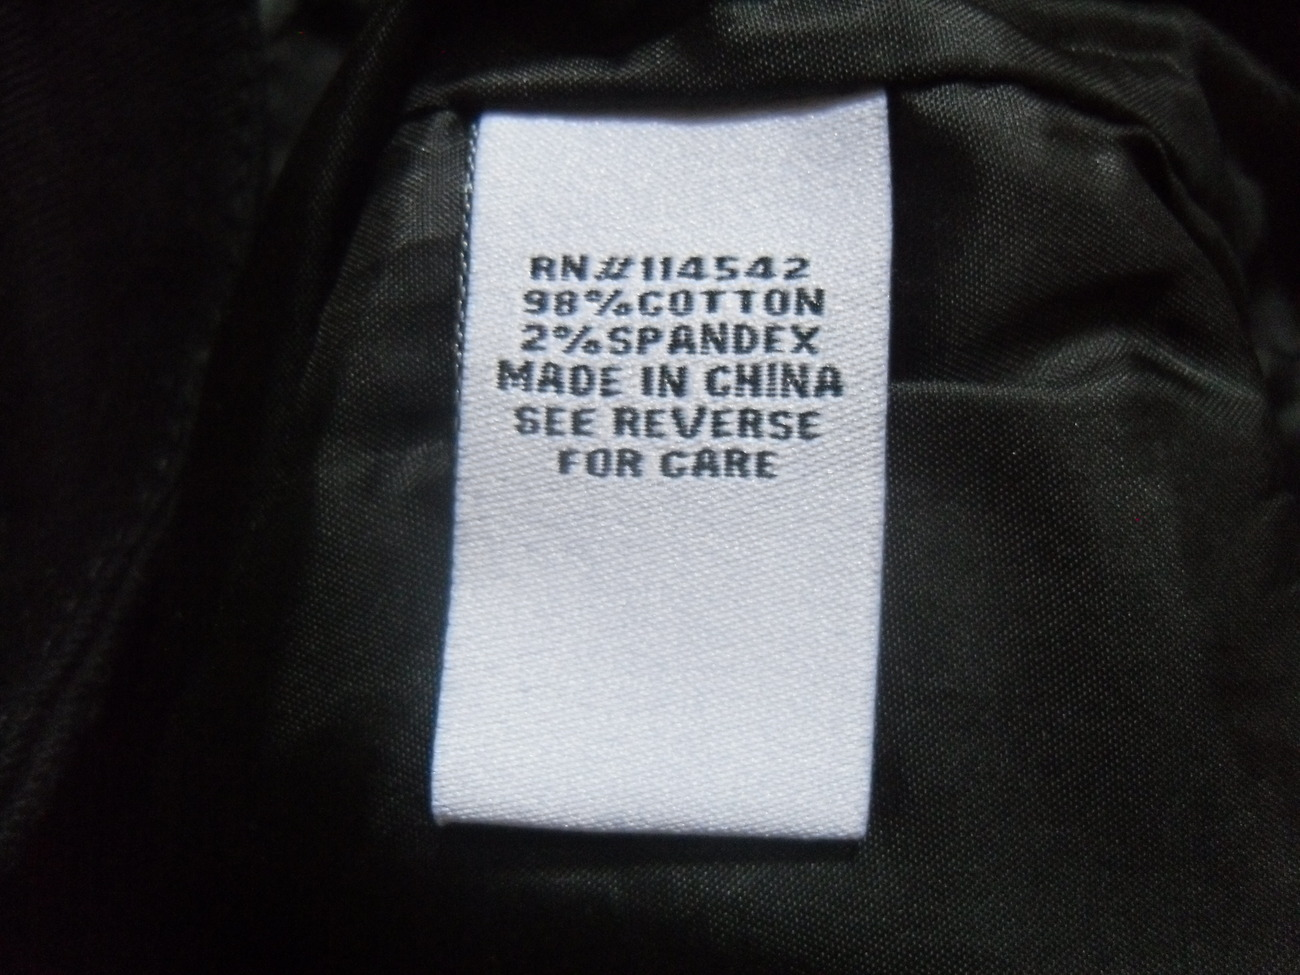 Black_zipper_skirt_care_label